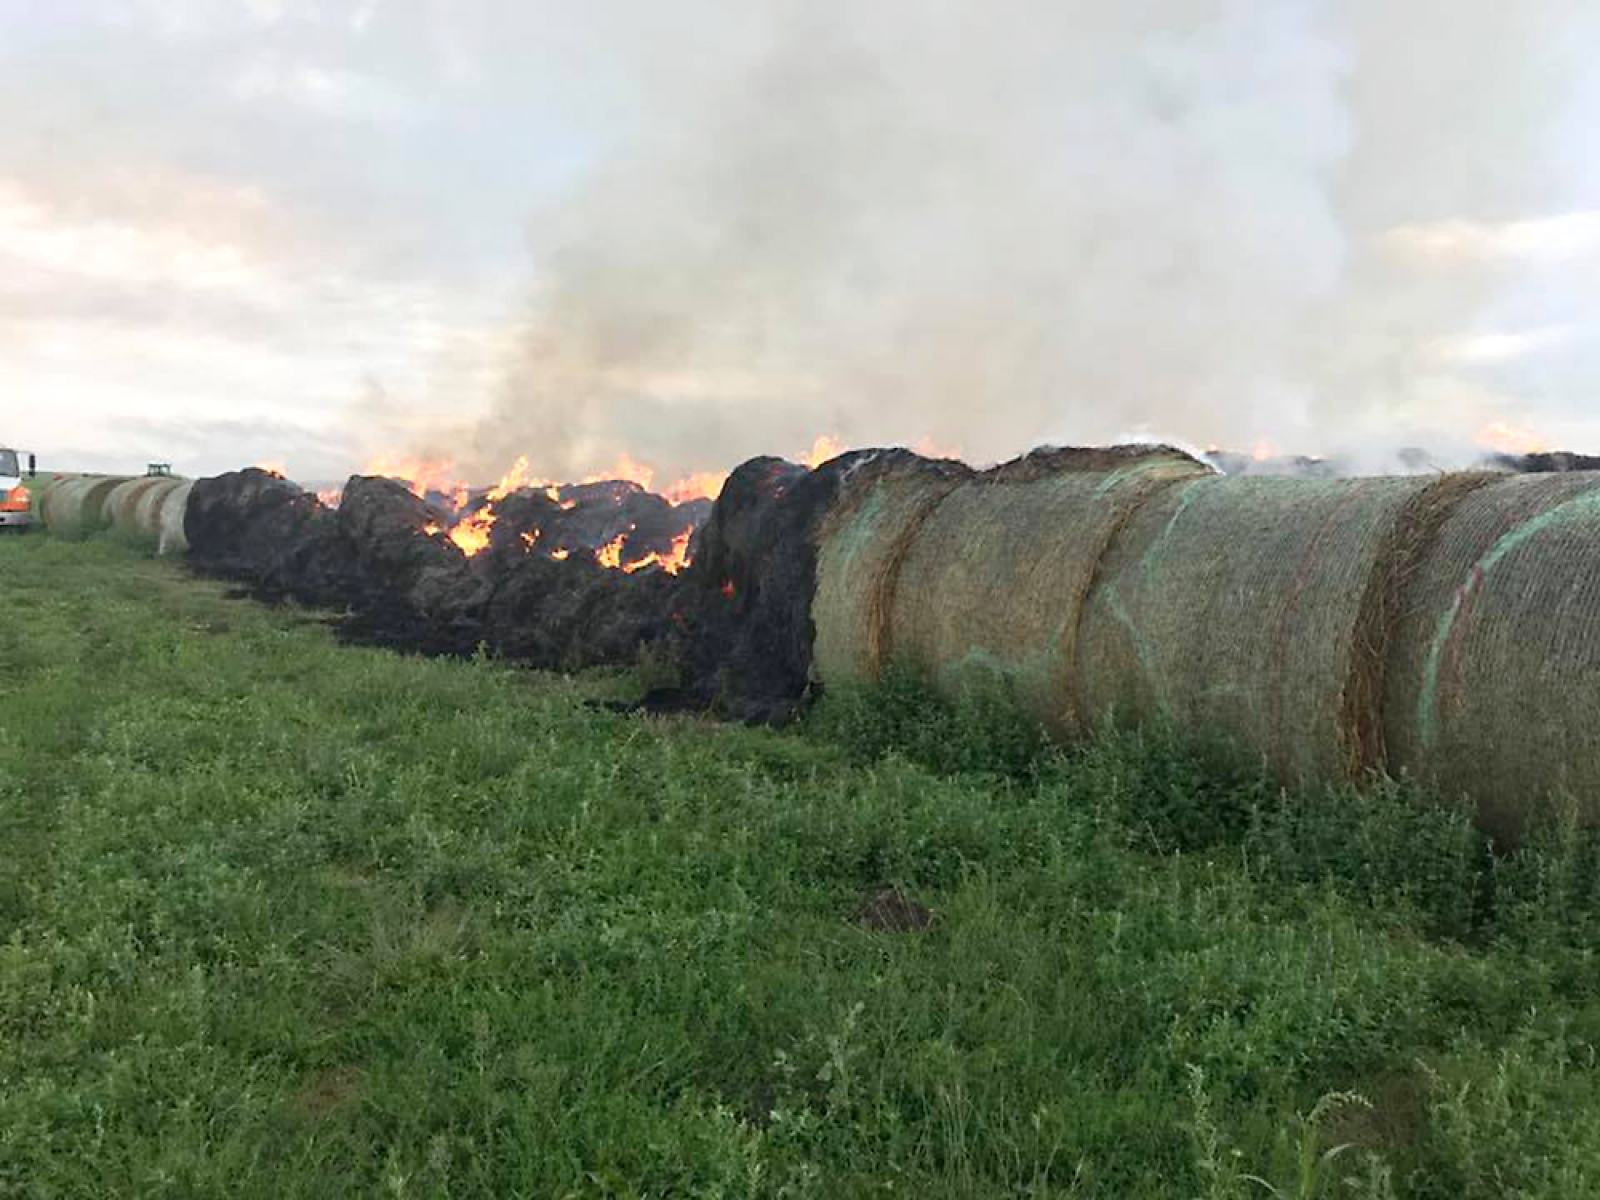 Monday, August 6 at 7:10 a.m., the HSVFD was called to a bale fire south of Hay Springs. There were approximately 100 bales lost from lightning. The Hemingford fire department was also called to the fire. No other loses are reported besides the bales.